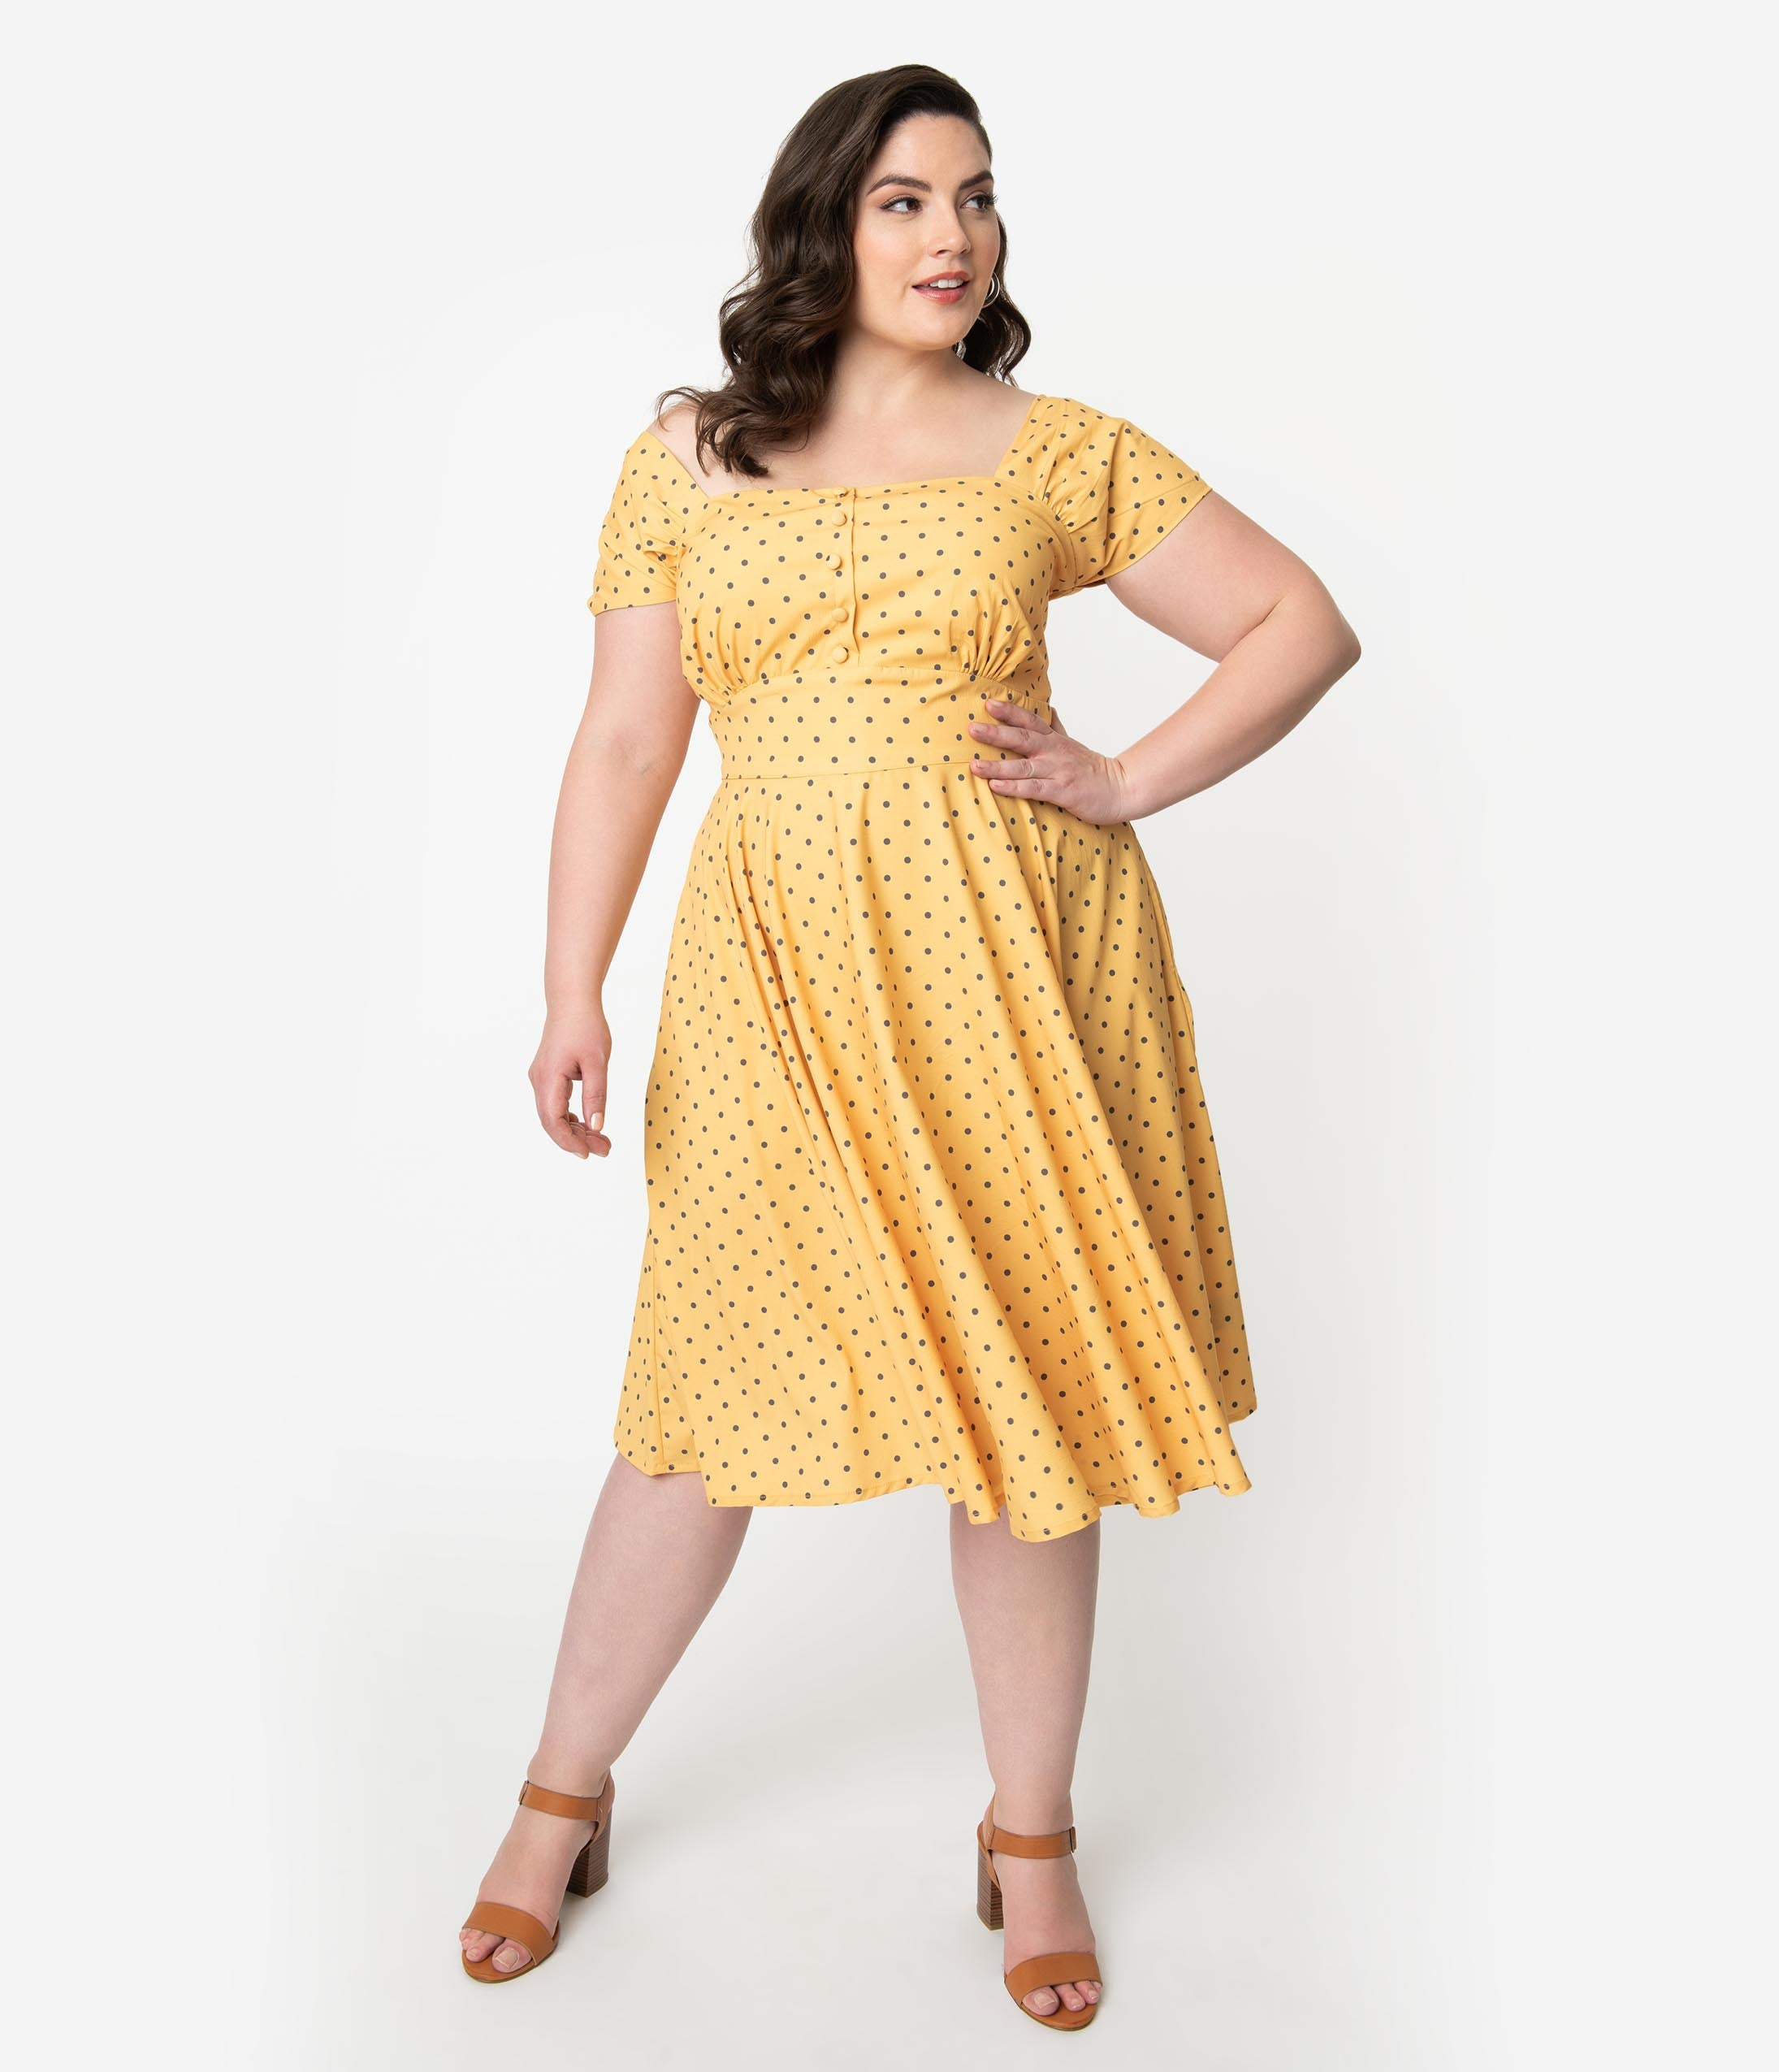 1940s Plus Size Clothing: Dresses History Plus Size 1940S Style Yellow  Grey Polka Dot Cap Sleeve Zafira Swing Dress $72.00 AT vintagedancer.com